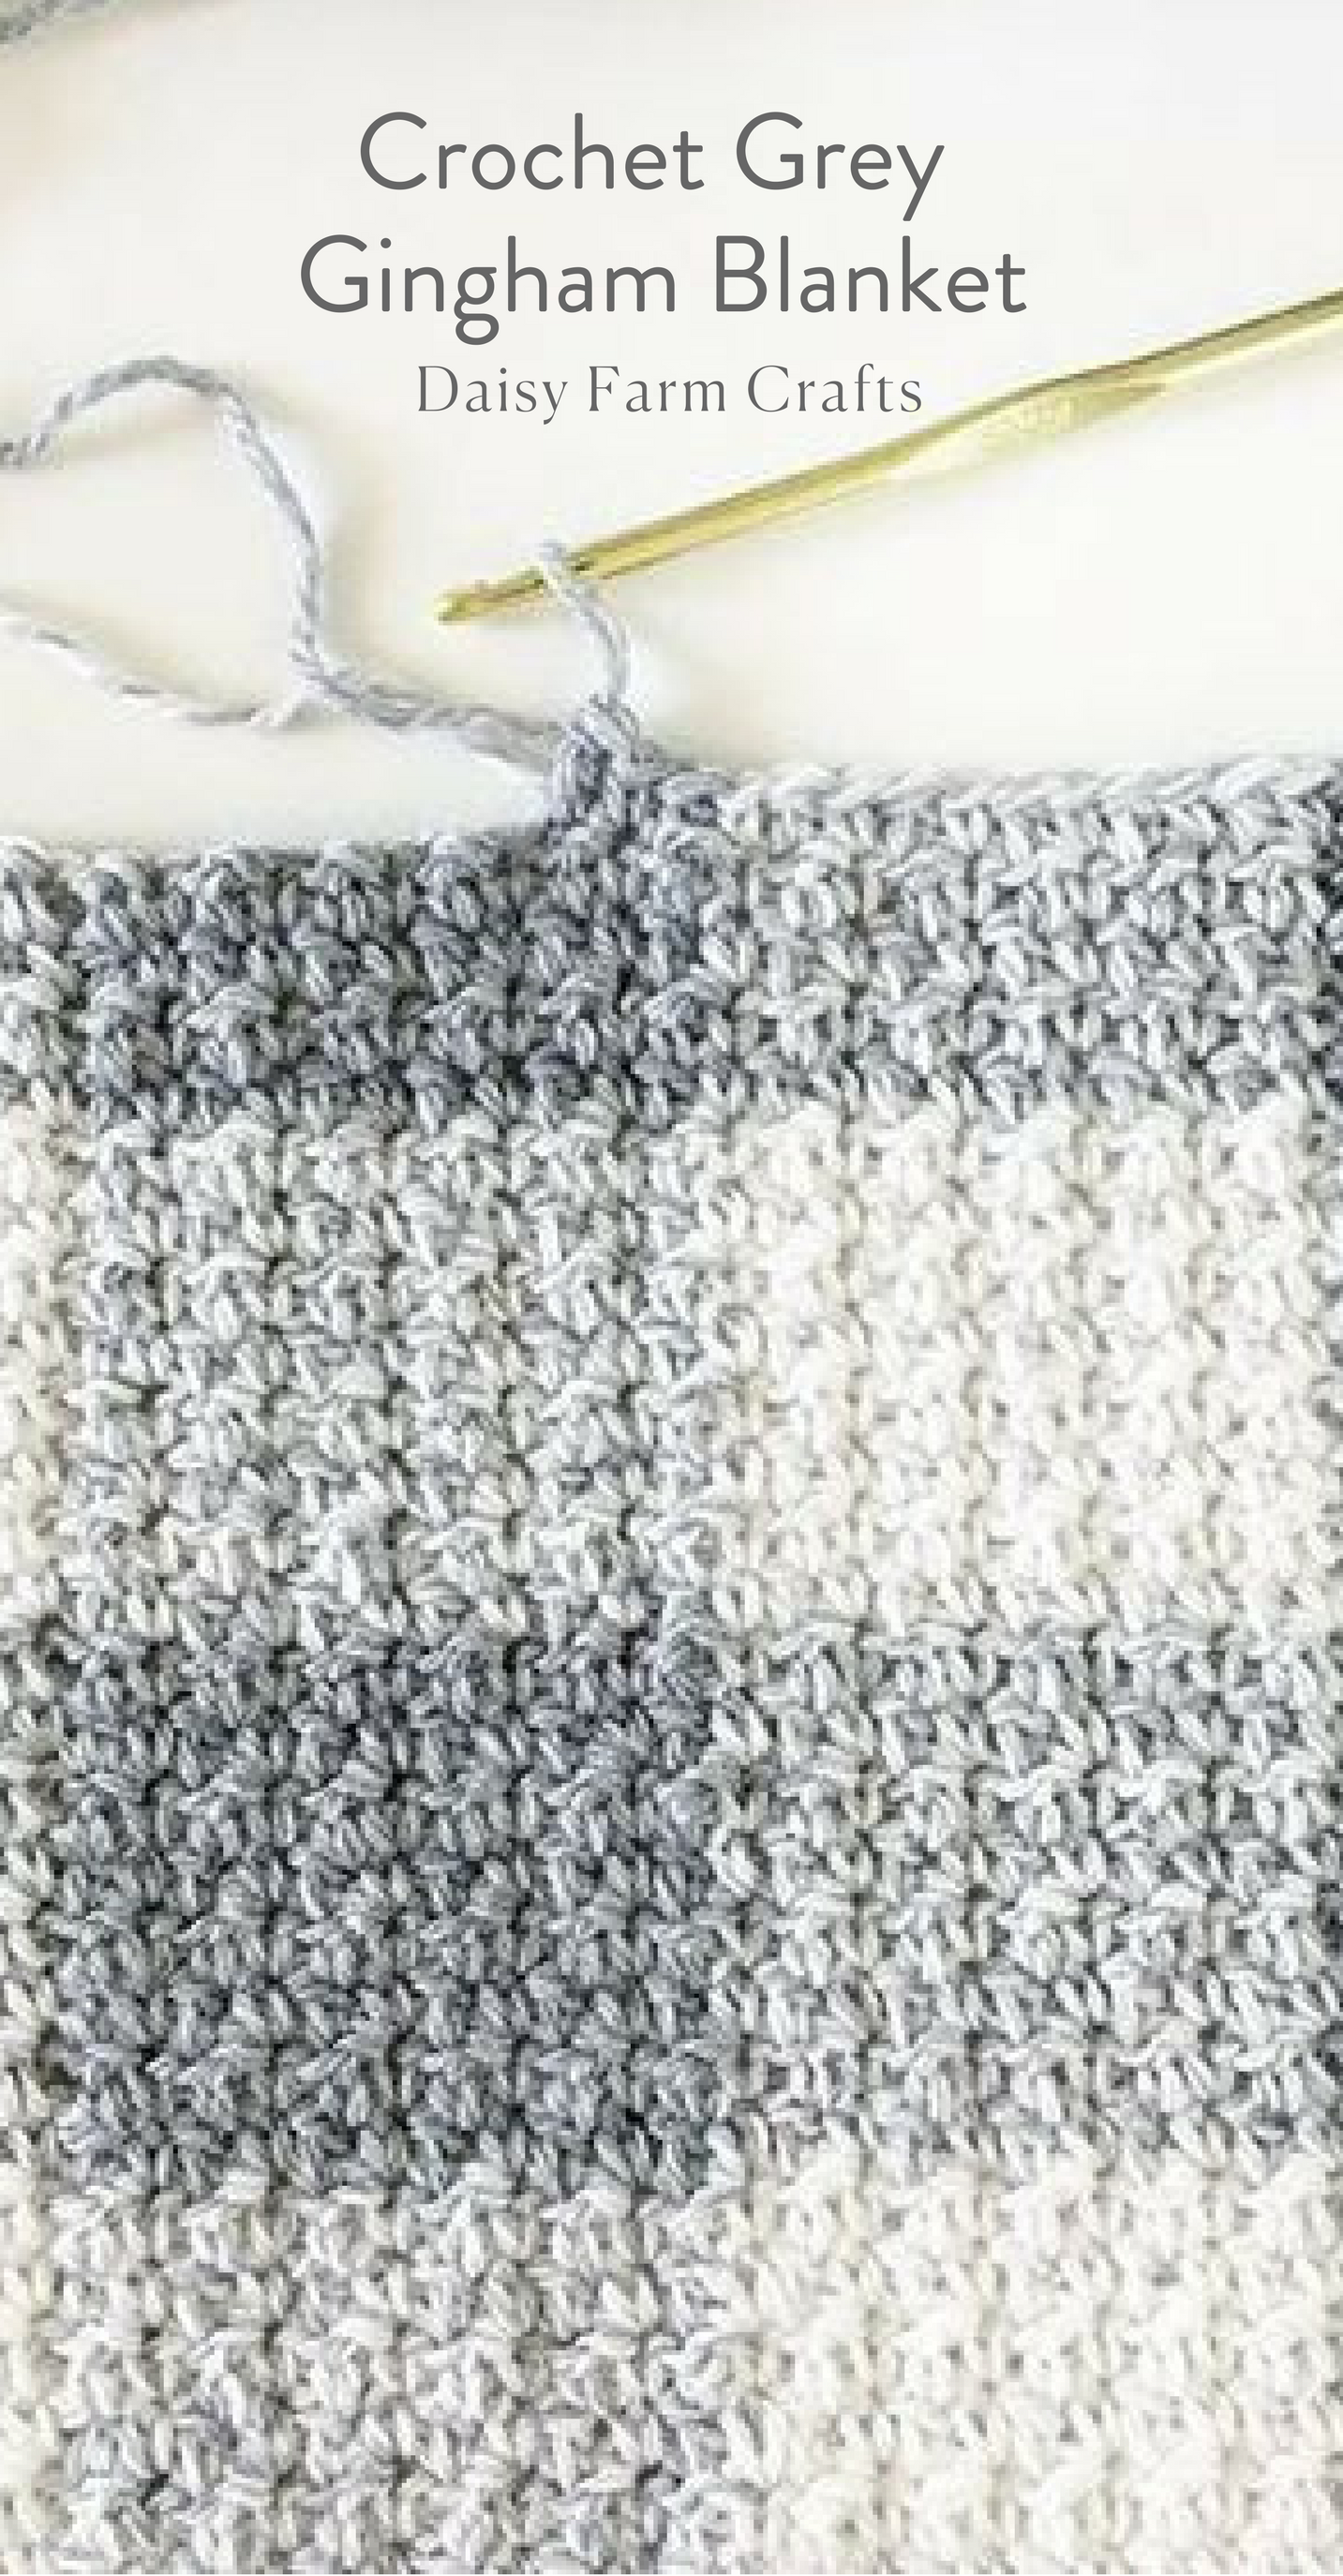 Free Pattern - Crochet Grey Gingham Blanket | Crochet | Pinterest ...